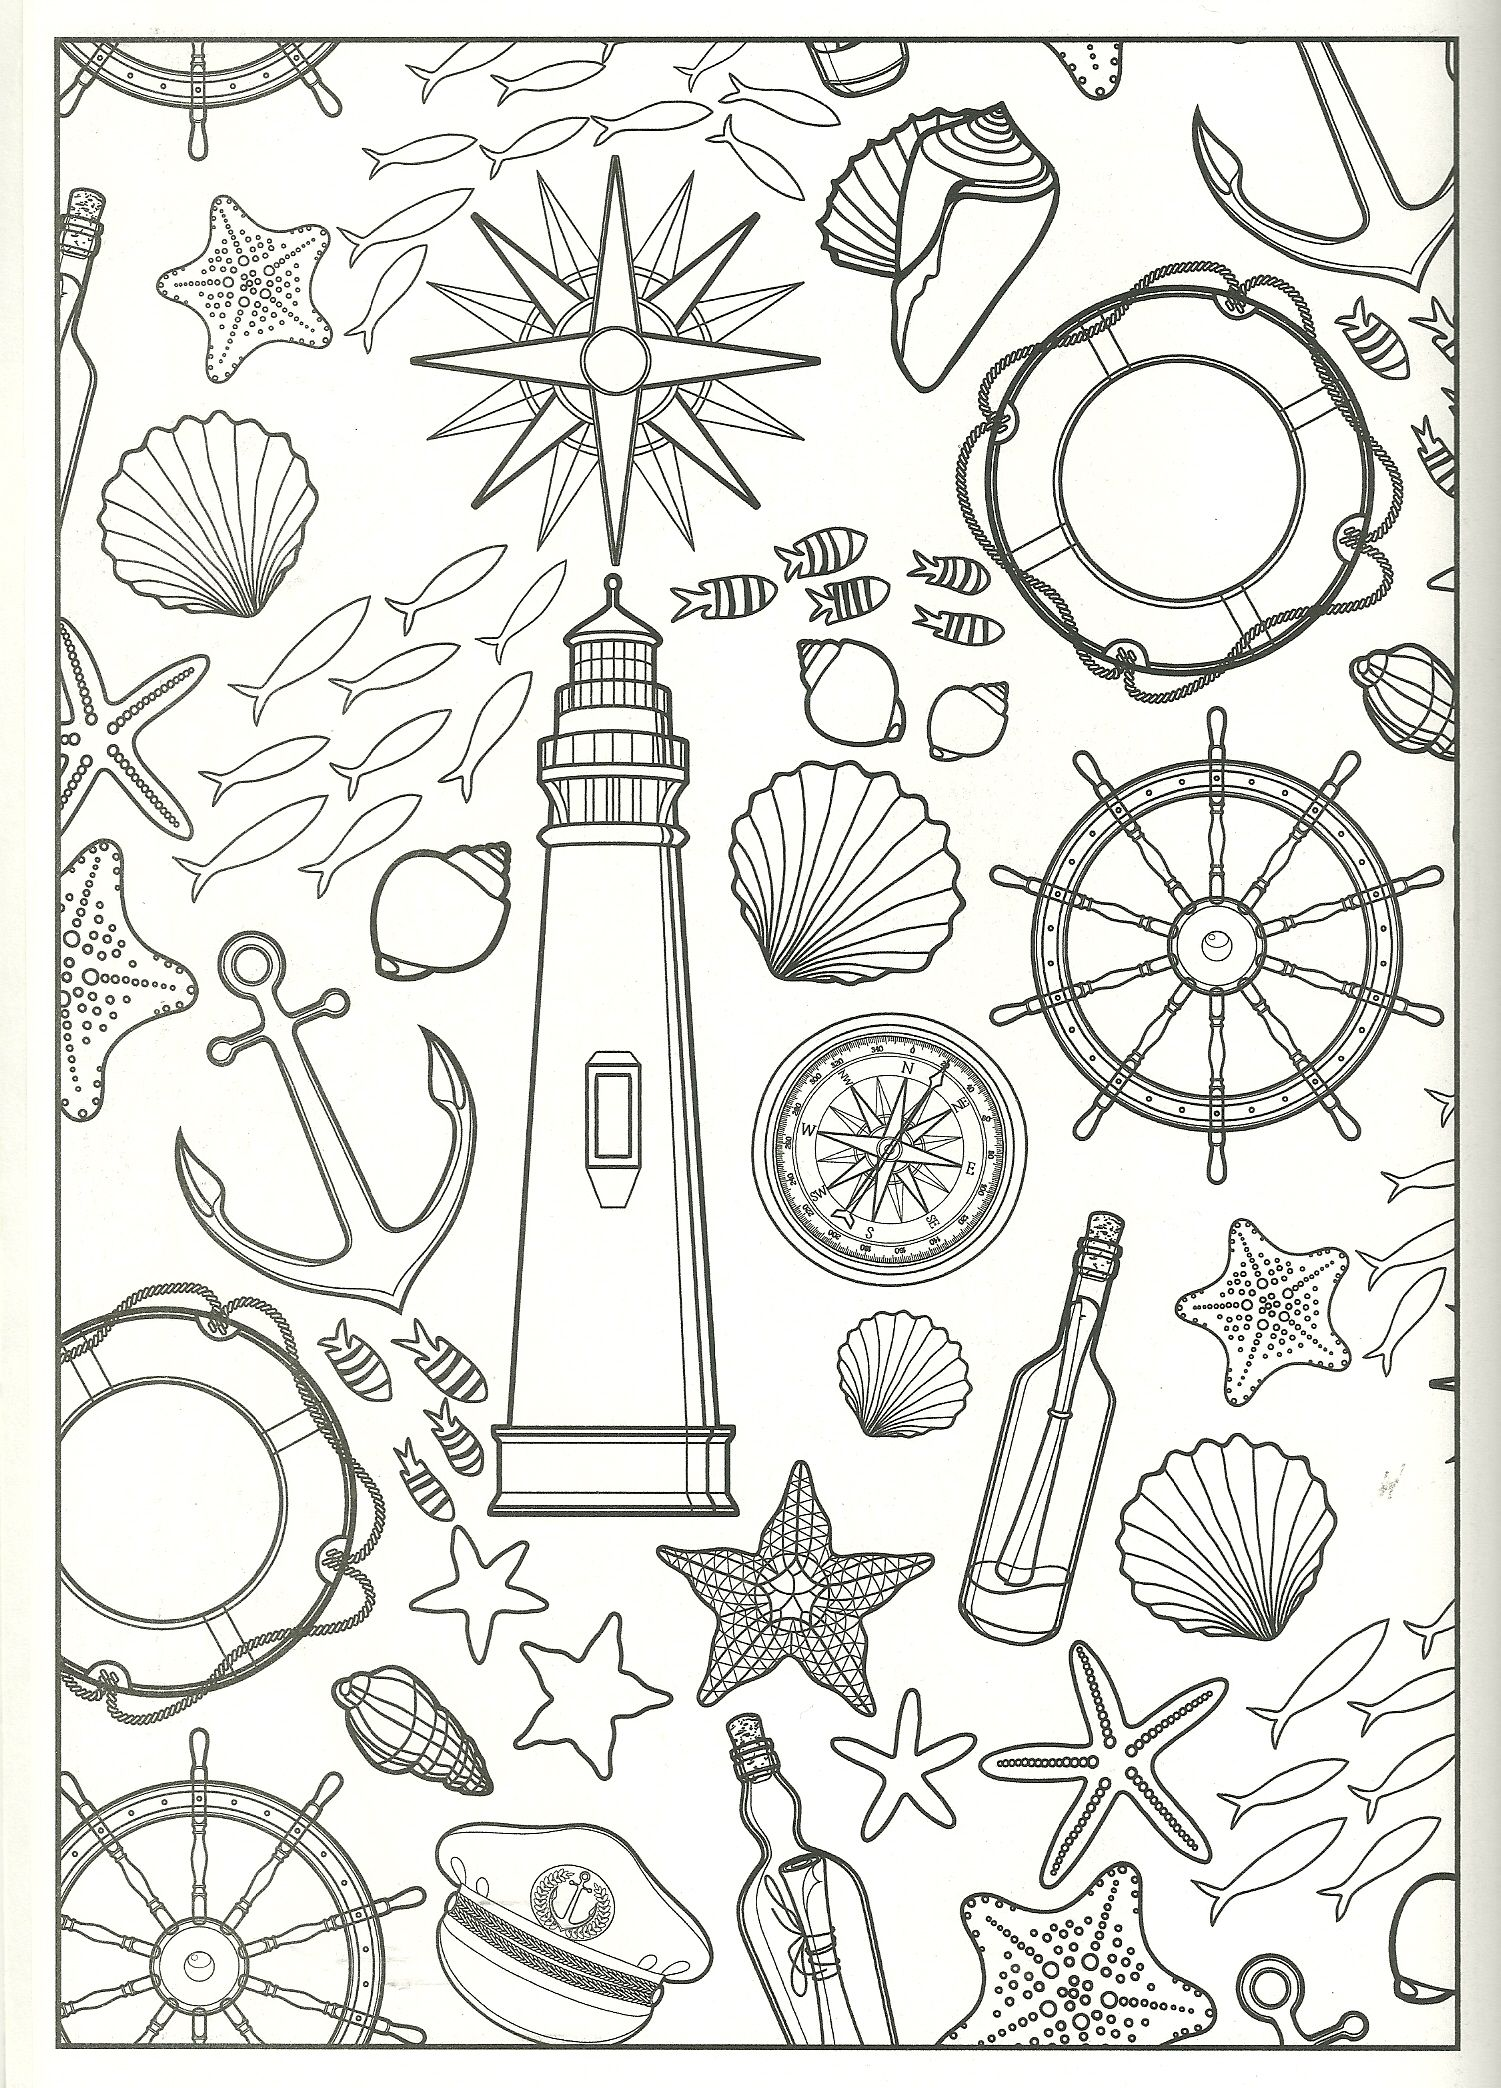 nautical collage coloring page | my coloring pages | Pinterest